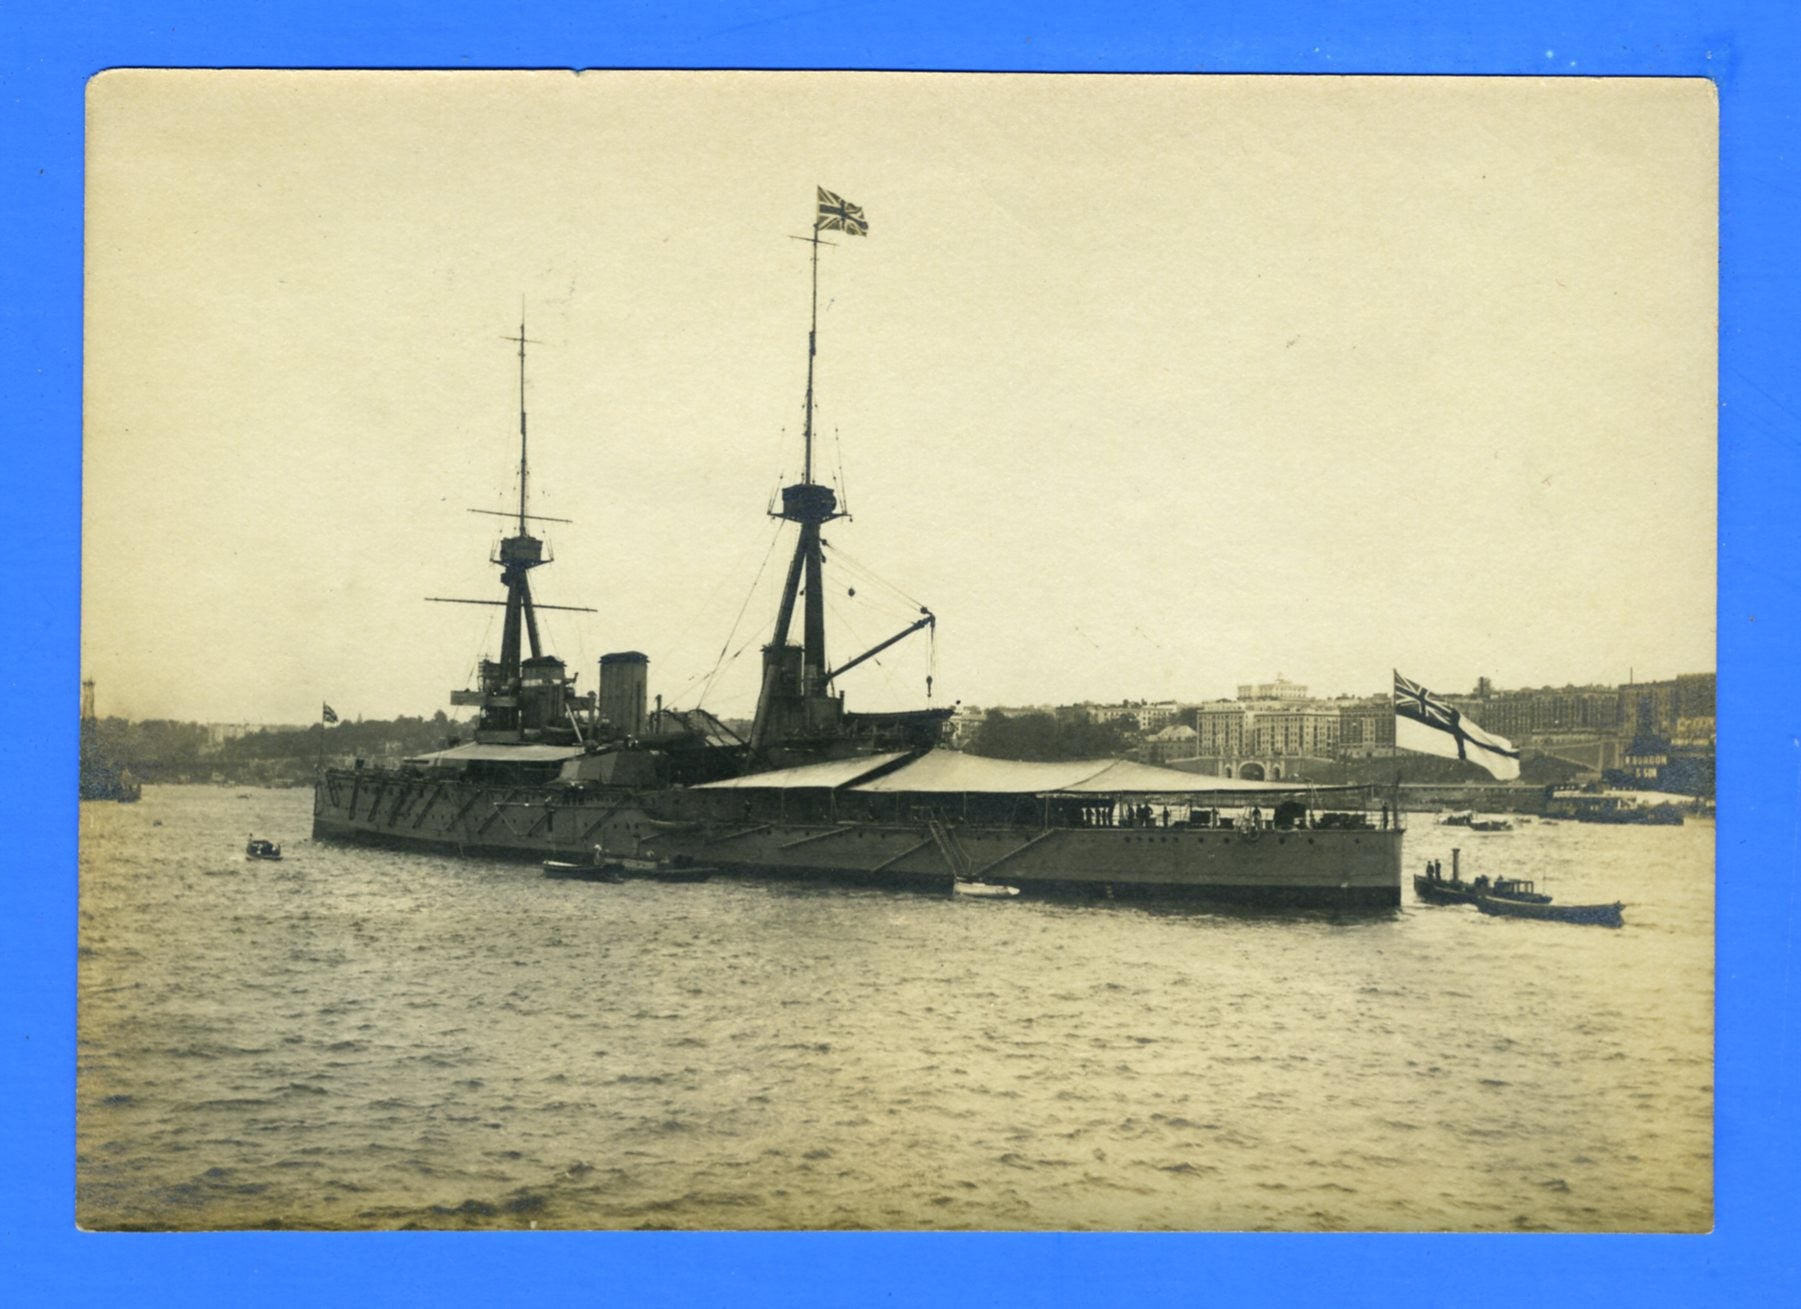 "HMS Inflexible at Hudson-Fulton Celebration October 1909 - 3 7/8 x 5 1/2"" Photograph"